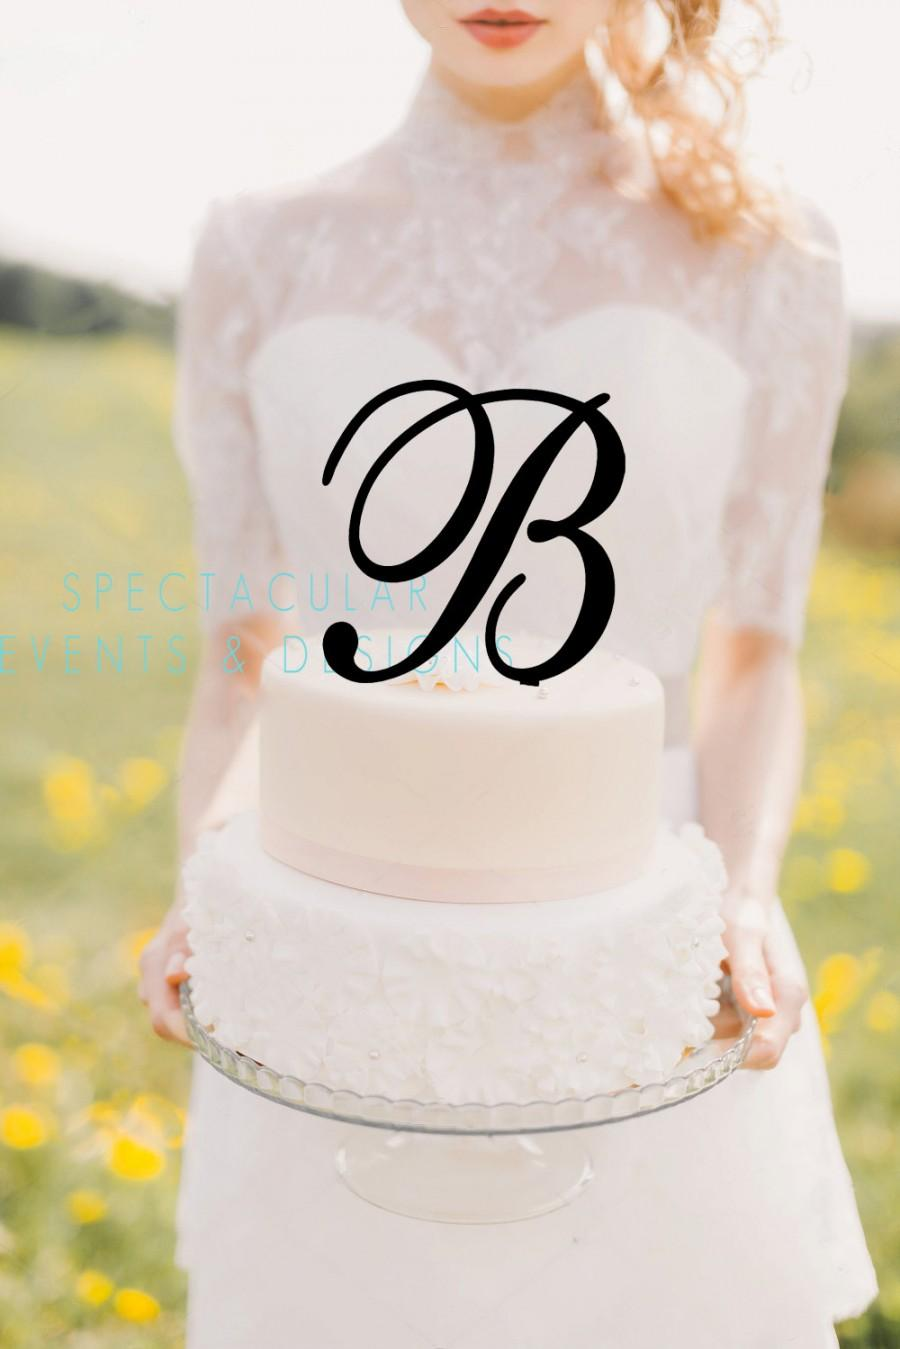 Свадьба - Ships Fast-Monogram Initial Letter Cake Topper-Wedding Birthday -5 Inches Tall (View Item Details Tab and Photos for More Info)